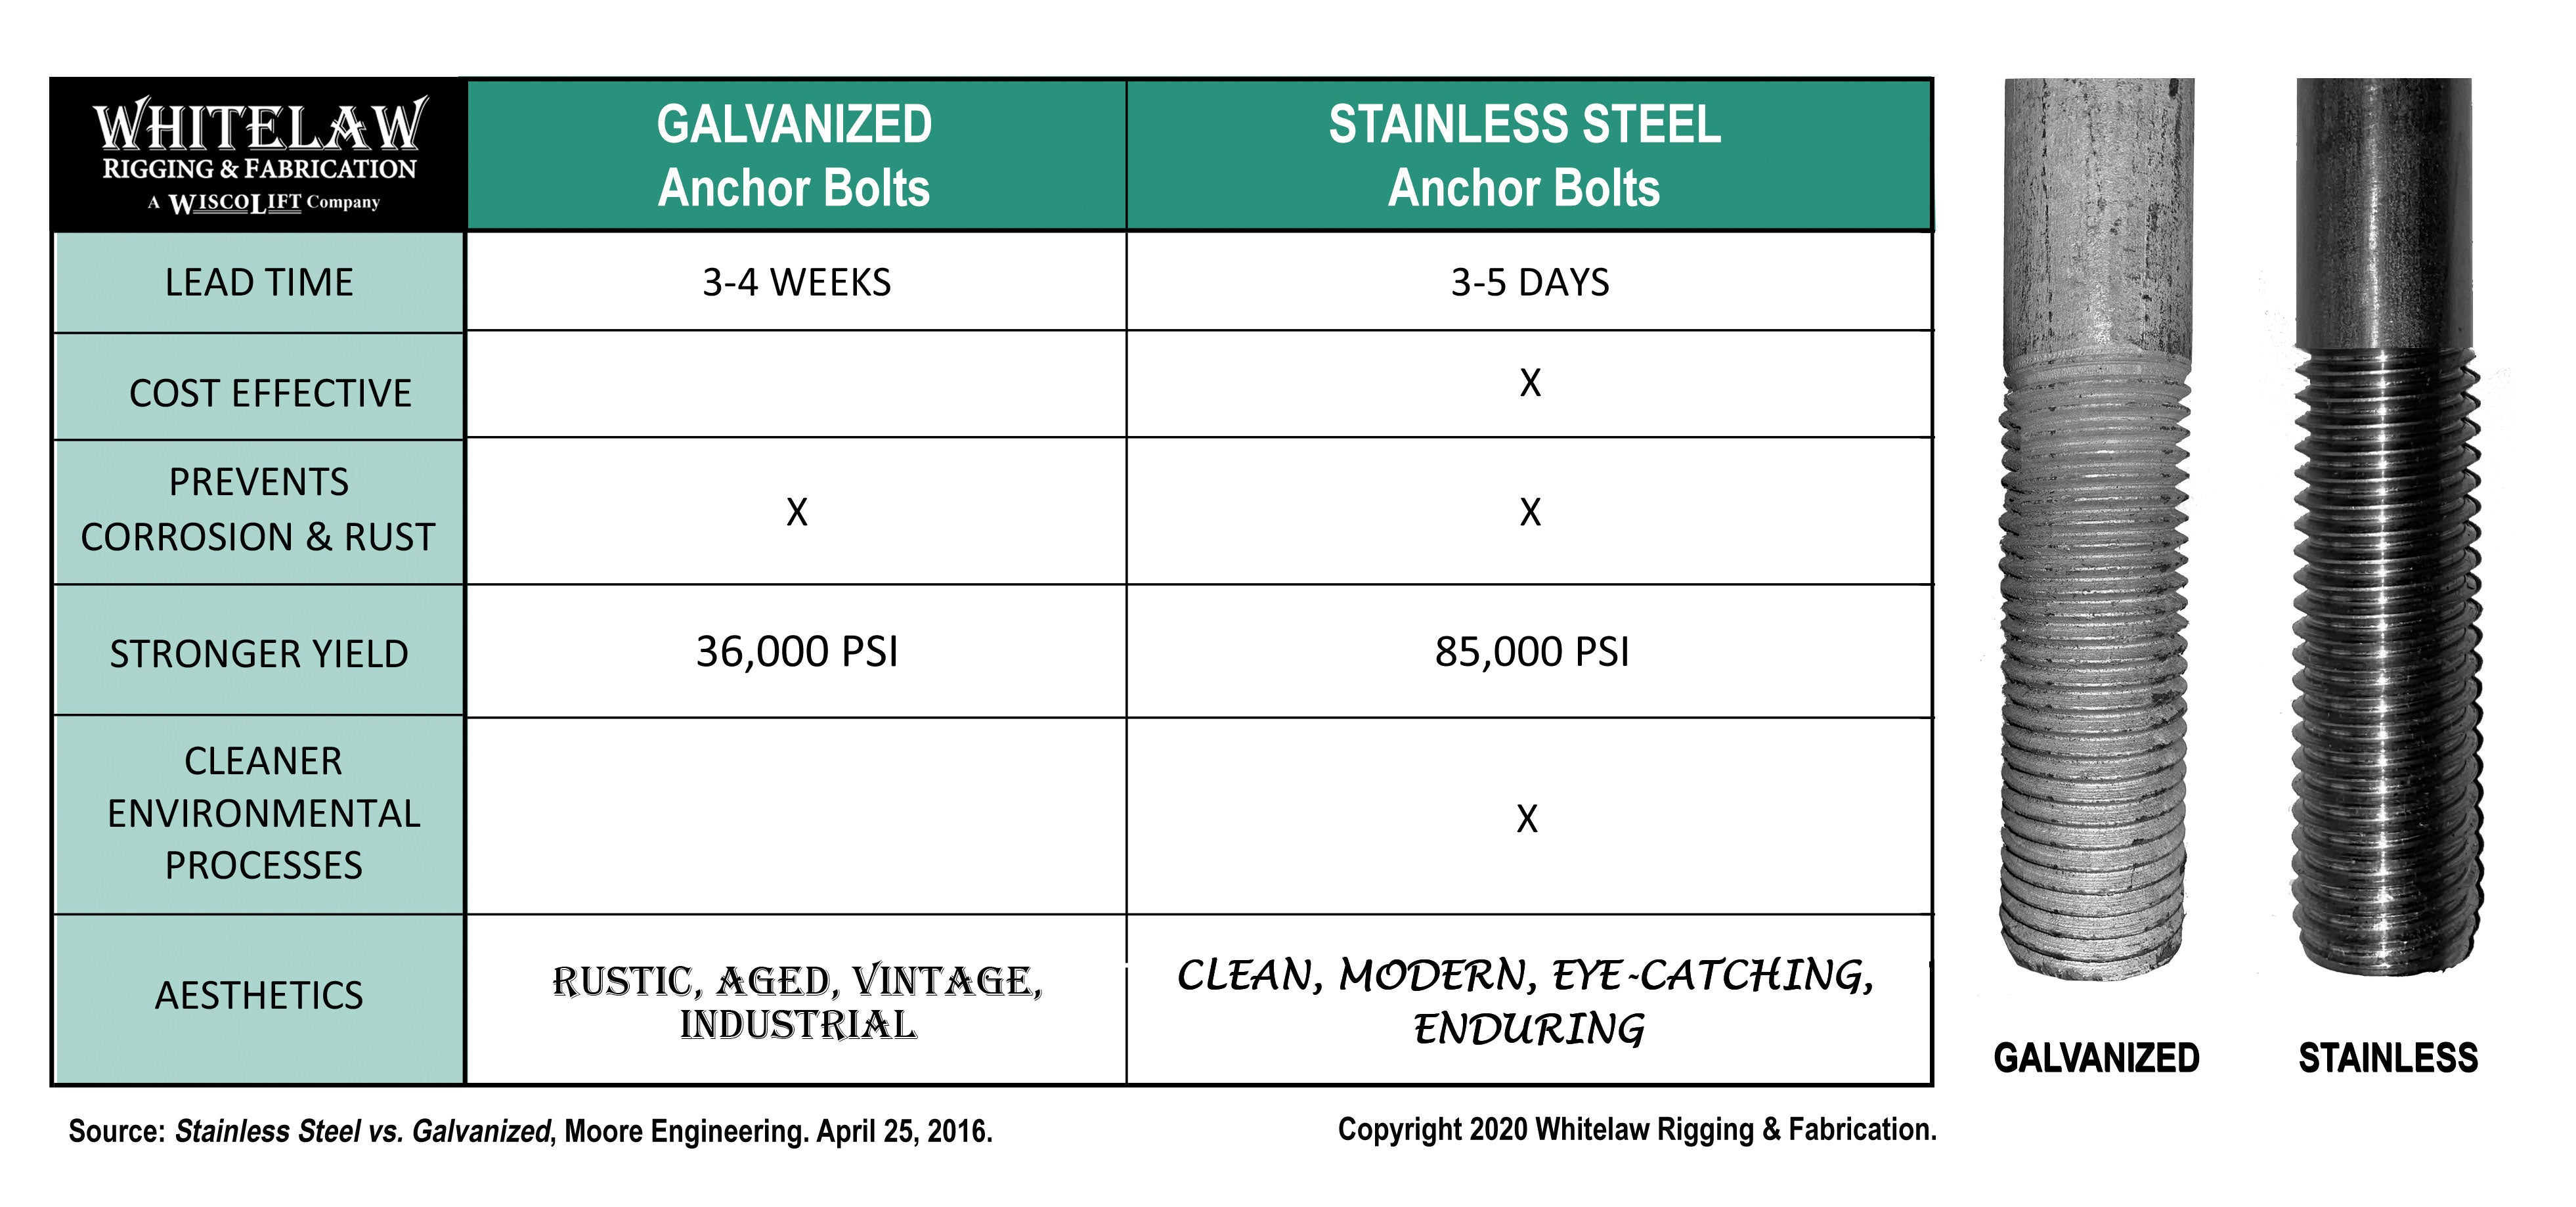 Galvanized Steel vs. Stainless Steel Anchor Bolts